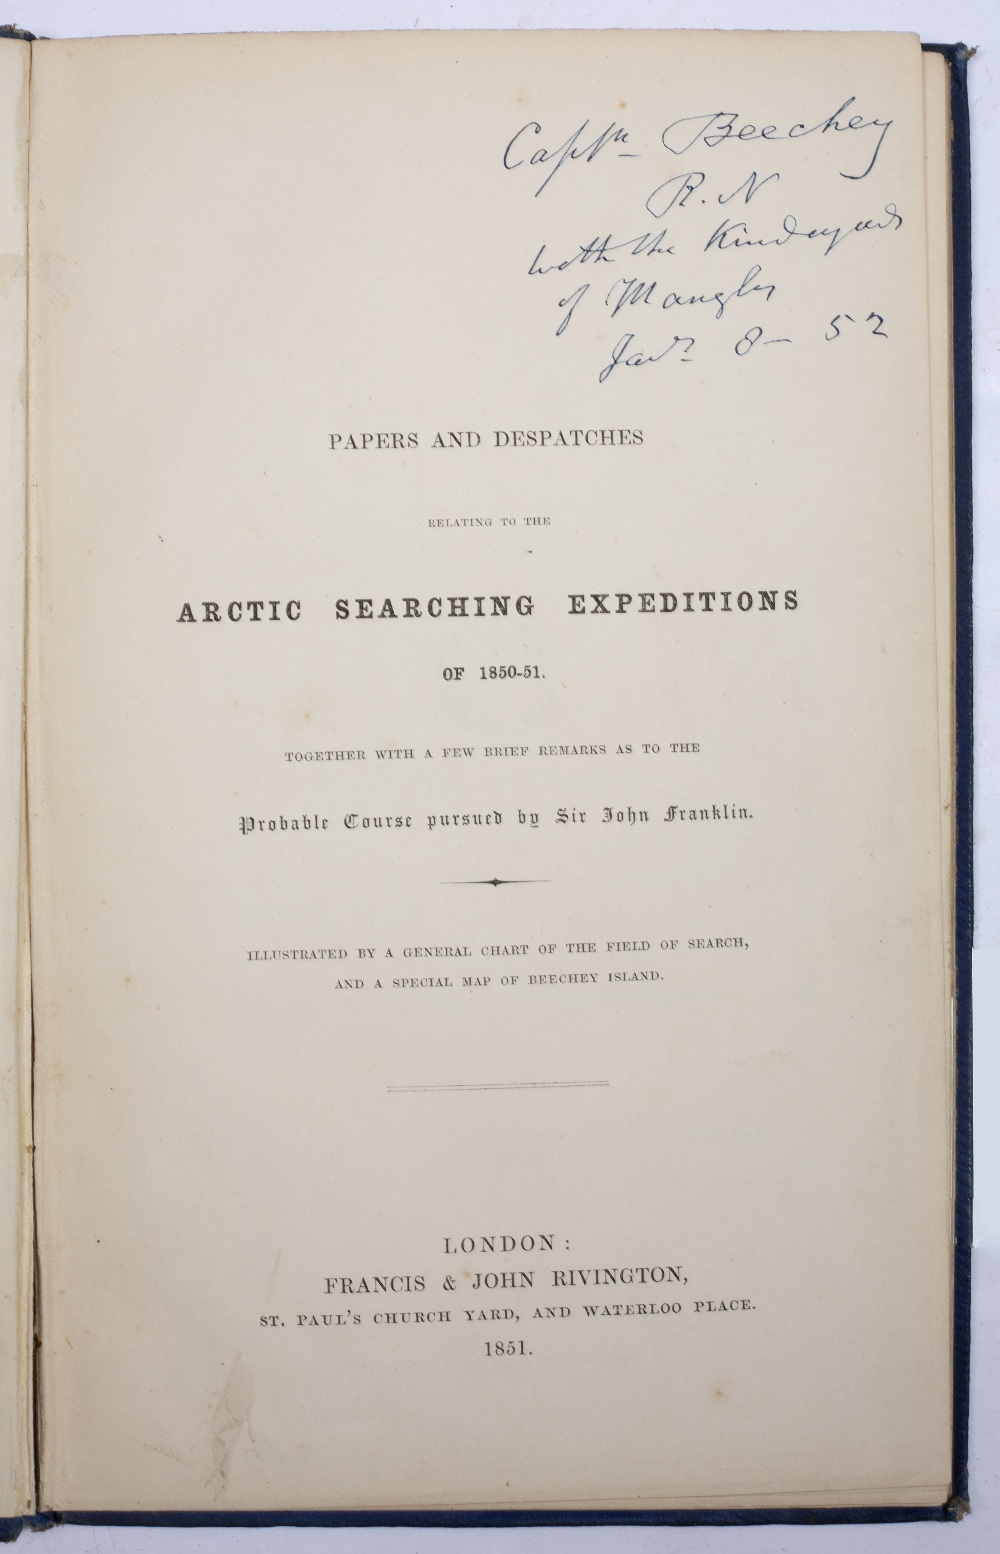 'Papers and Dispatches relating to the Arctic Searching Expeditions of 1850-51, together with a - Image 2 of 3